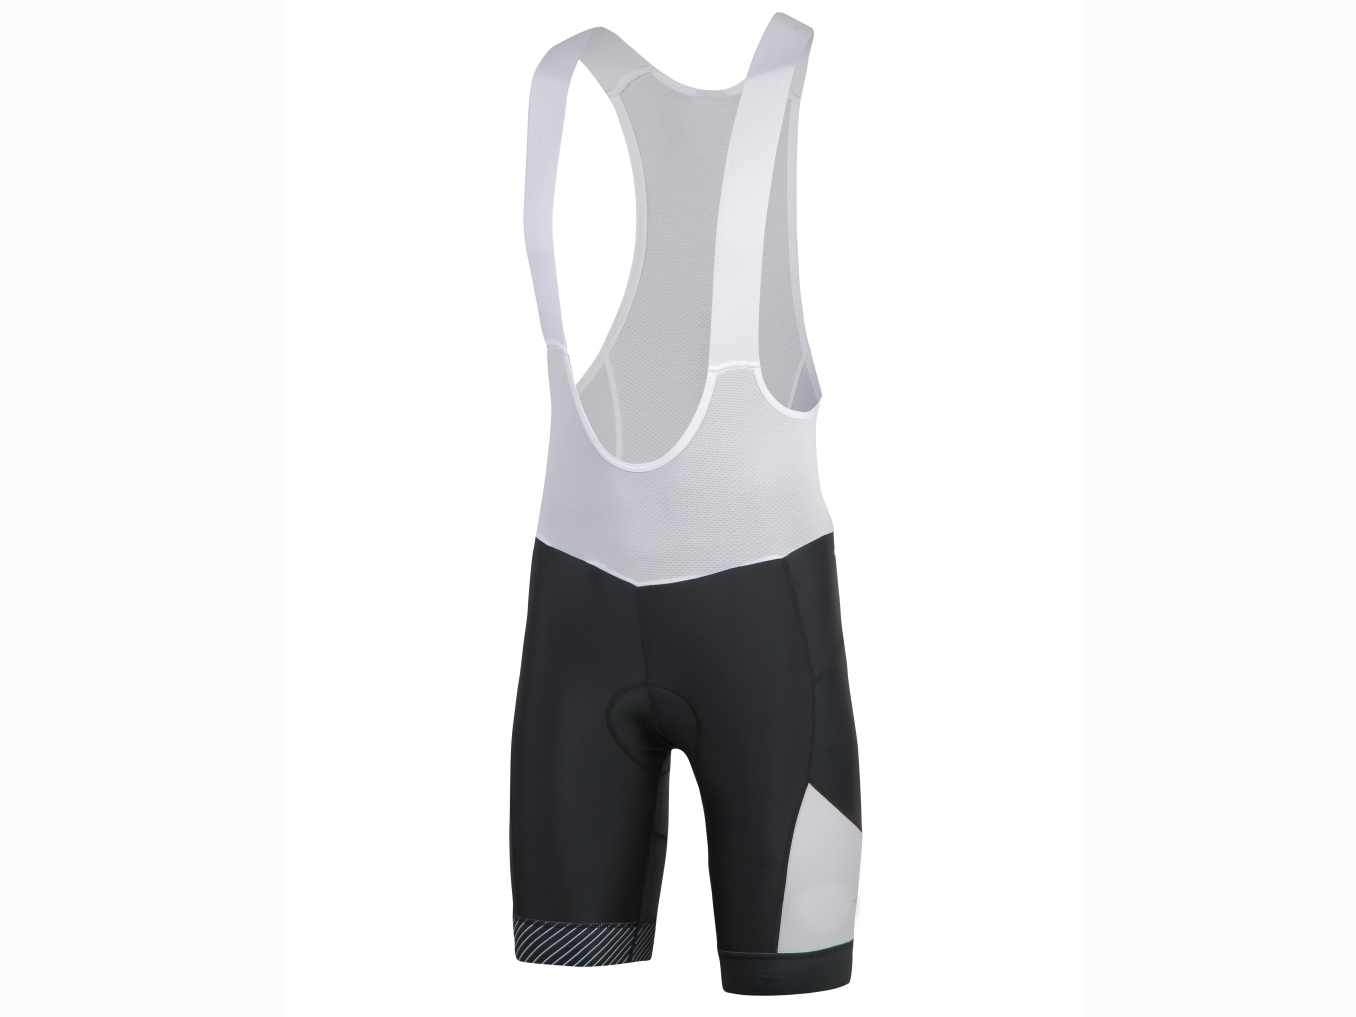 Men's knitted bicycle Bib short with pad